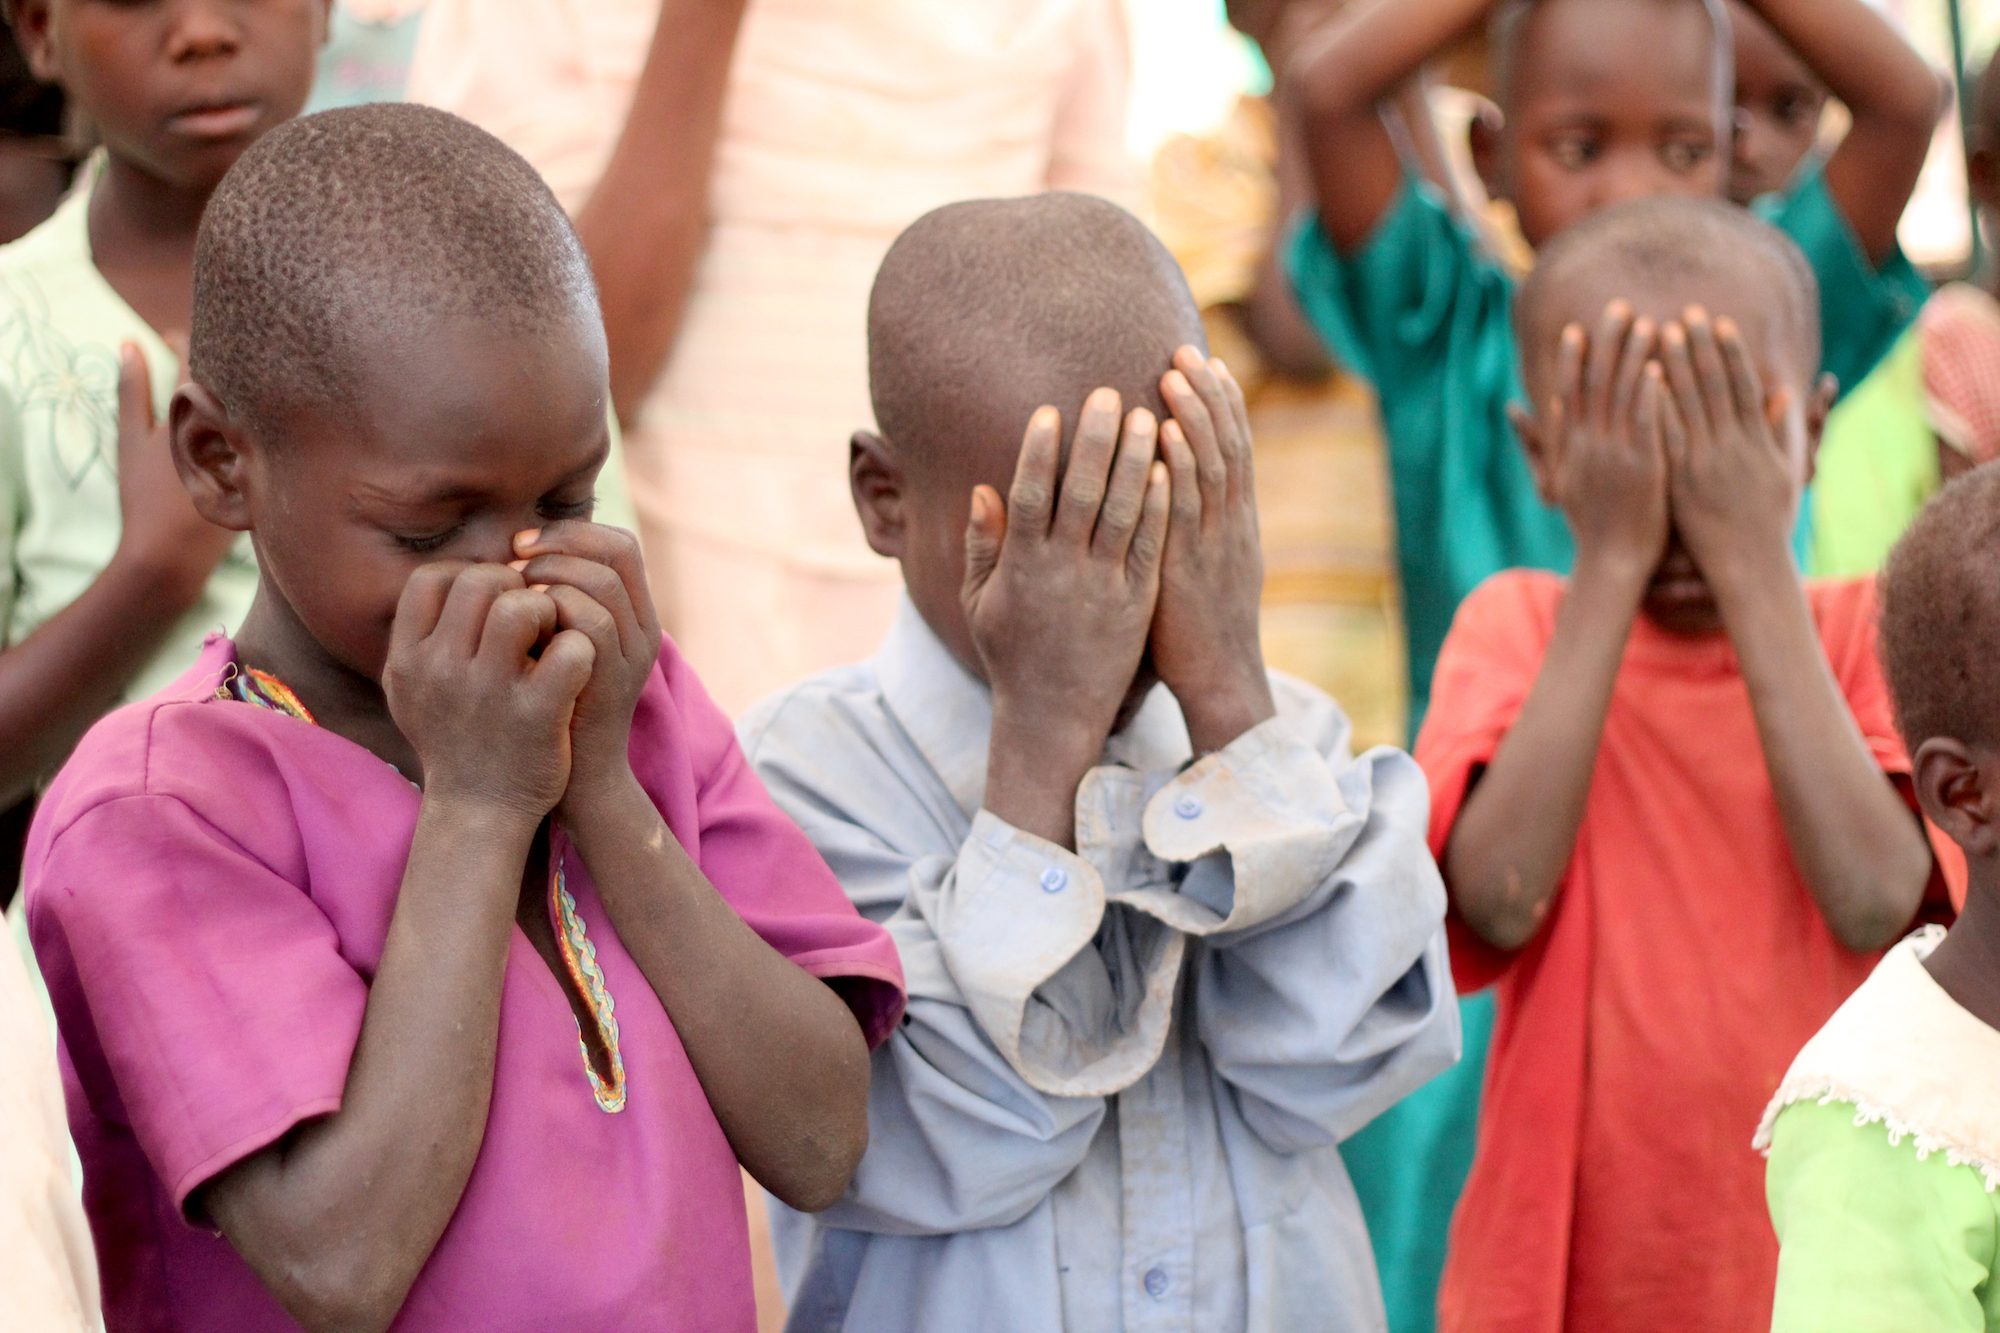 Group of children covering their eyes